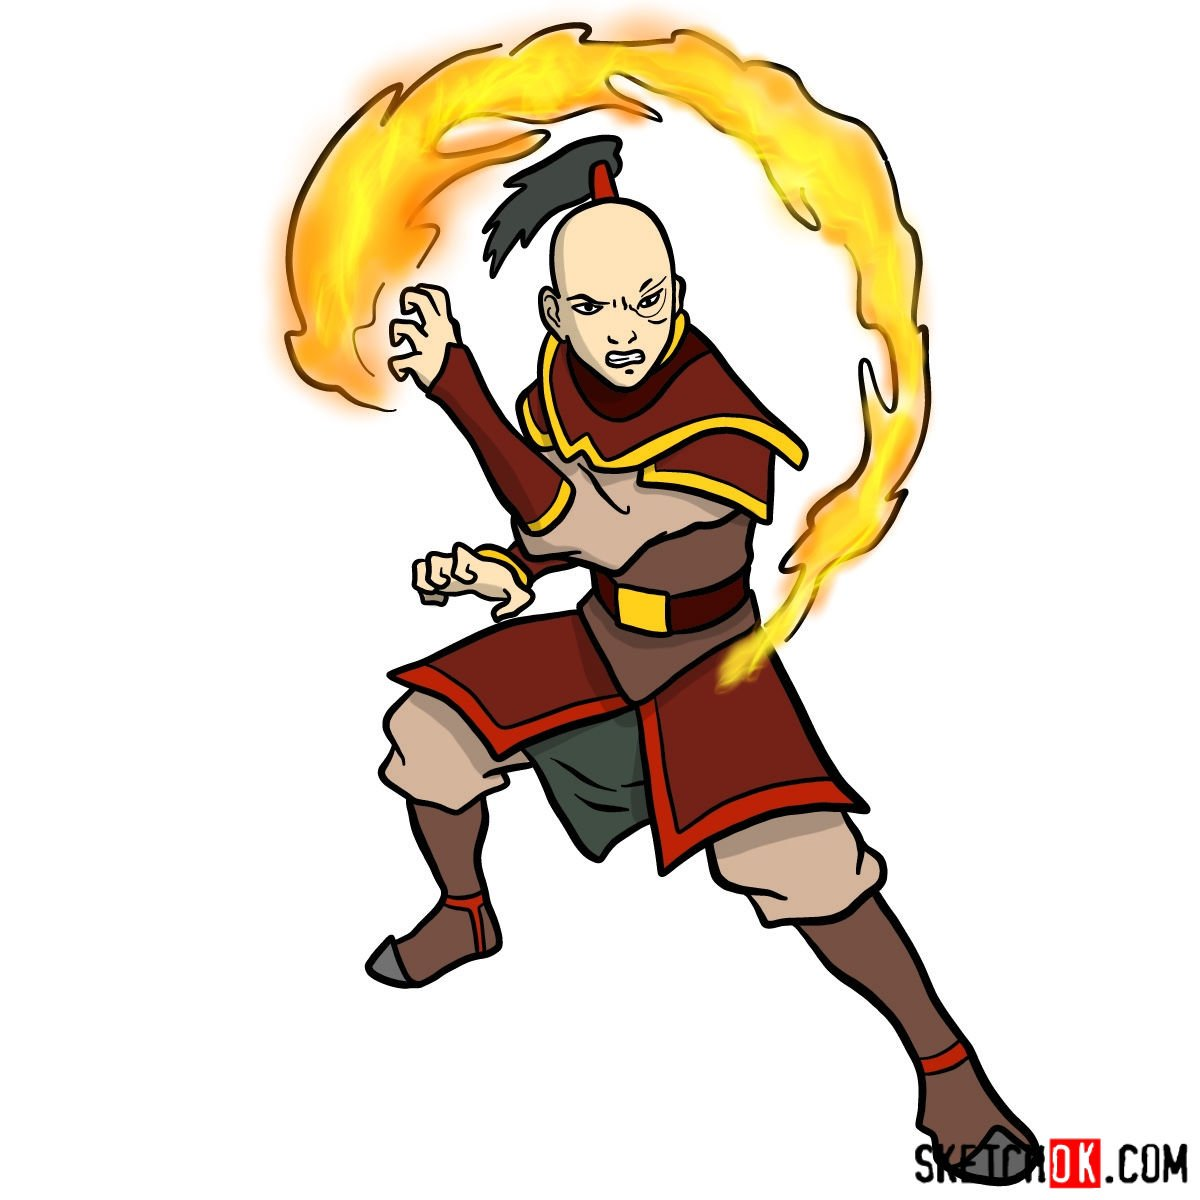 How to draw Zuko from Avatar series